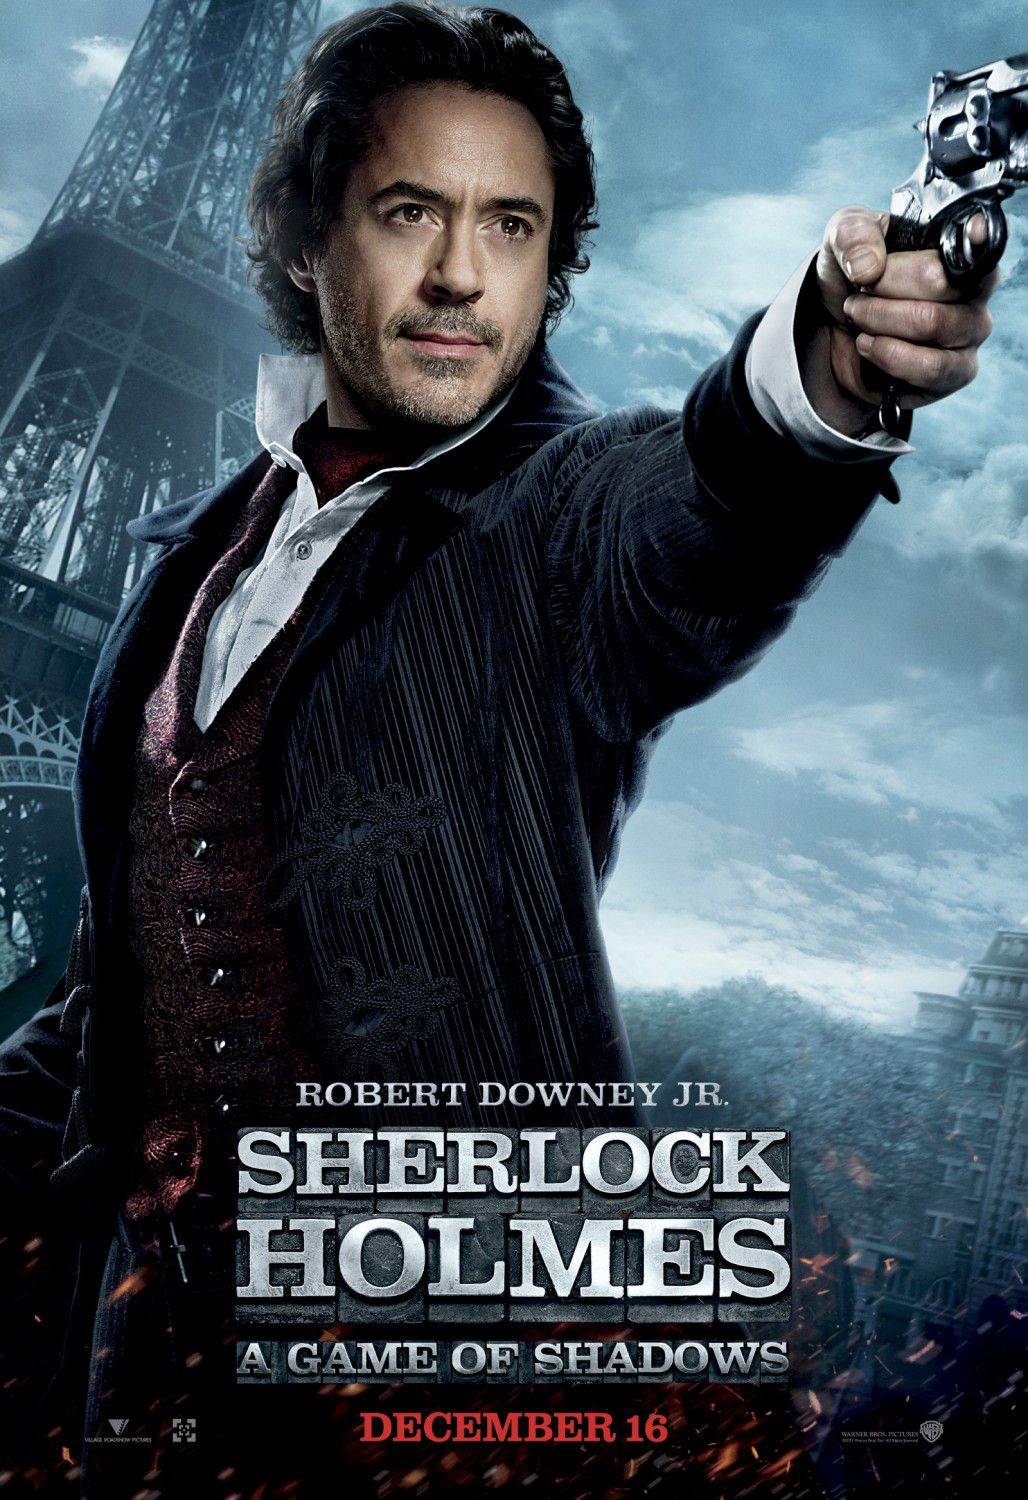 Sherlock Holmes a Game of Shadows - Gioco di Ombre (2011) - Robert Downey Jr.